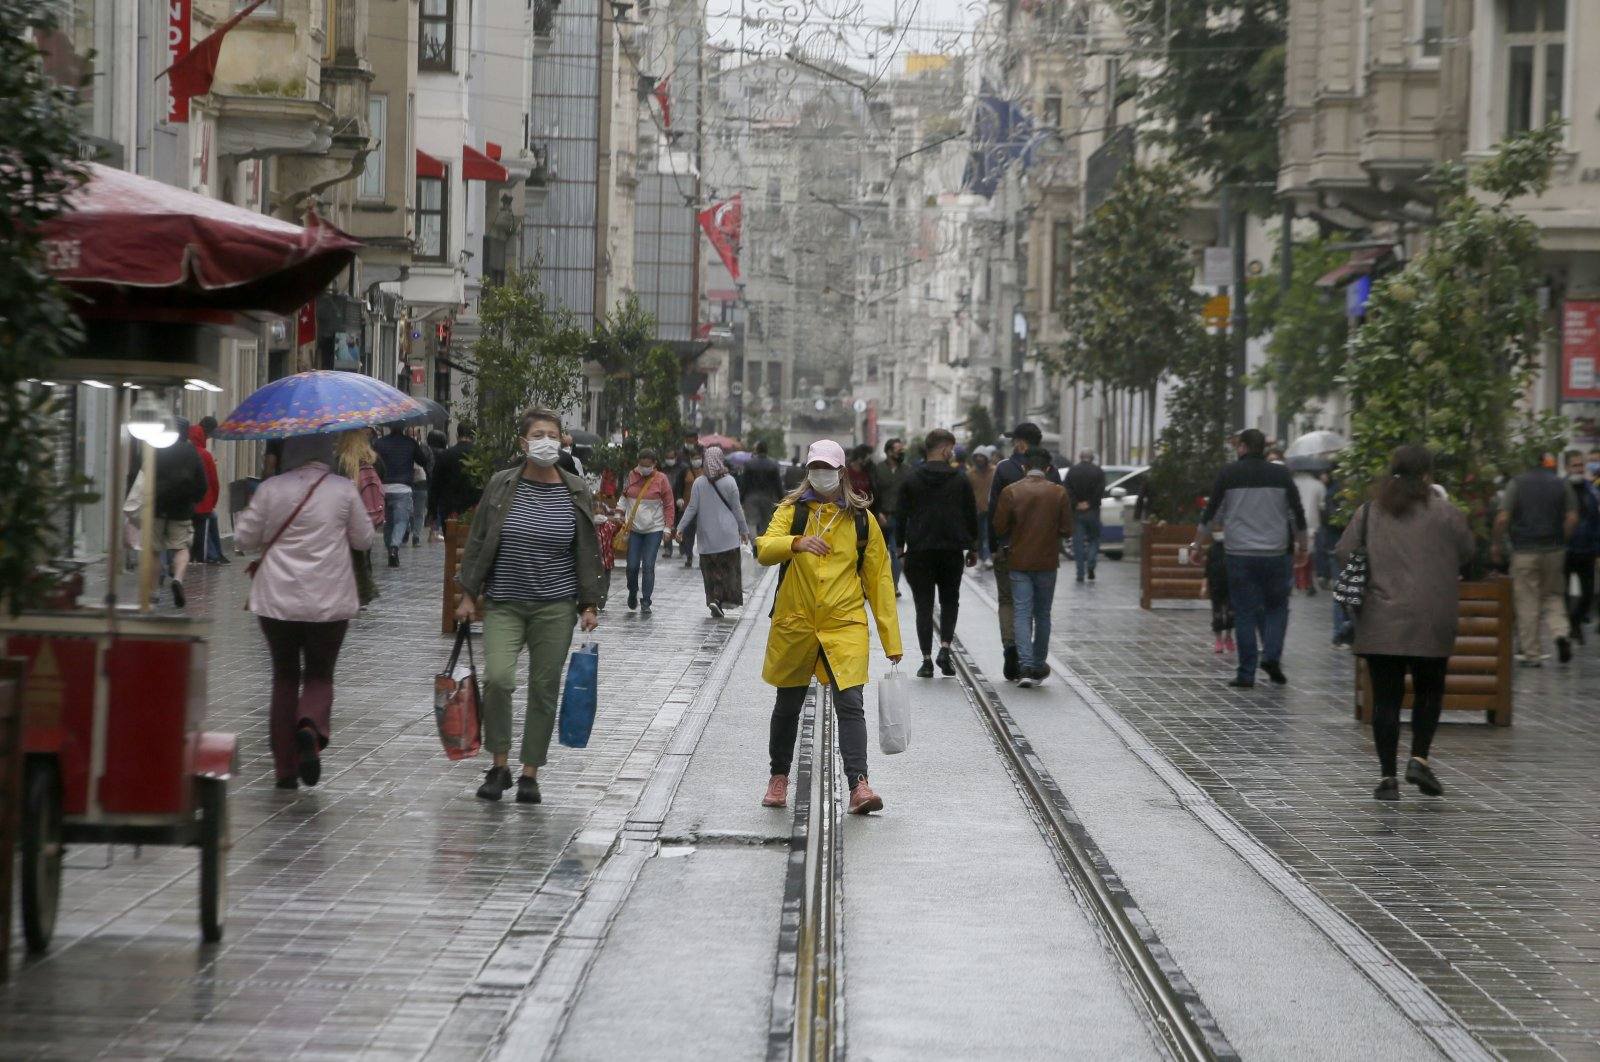 People walk on Istiklal Street in Taksim, Istanbul, Wednesday, May 27, 2020. (AA Photo)